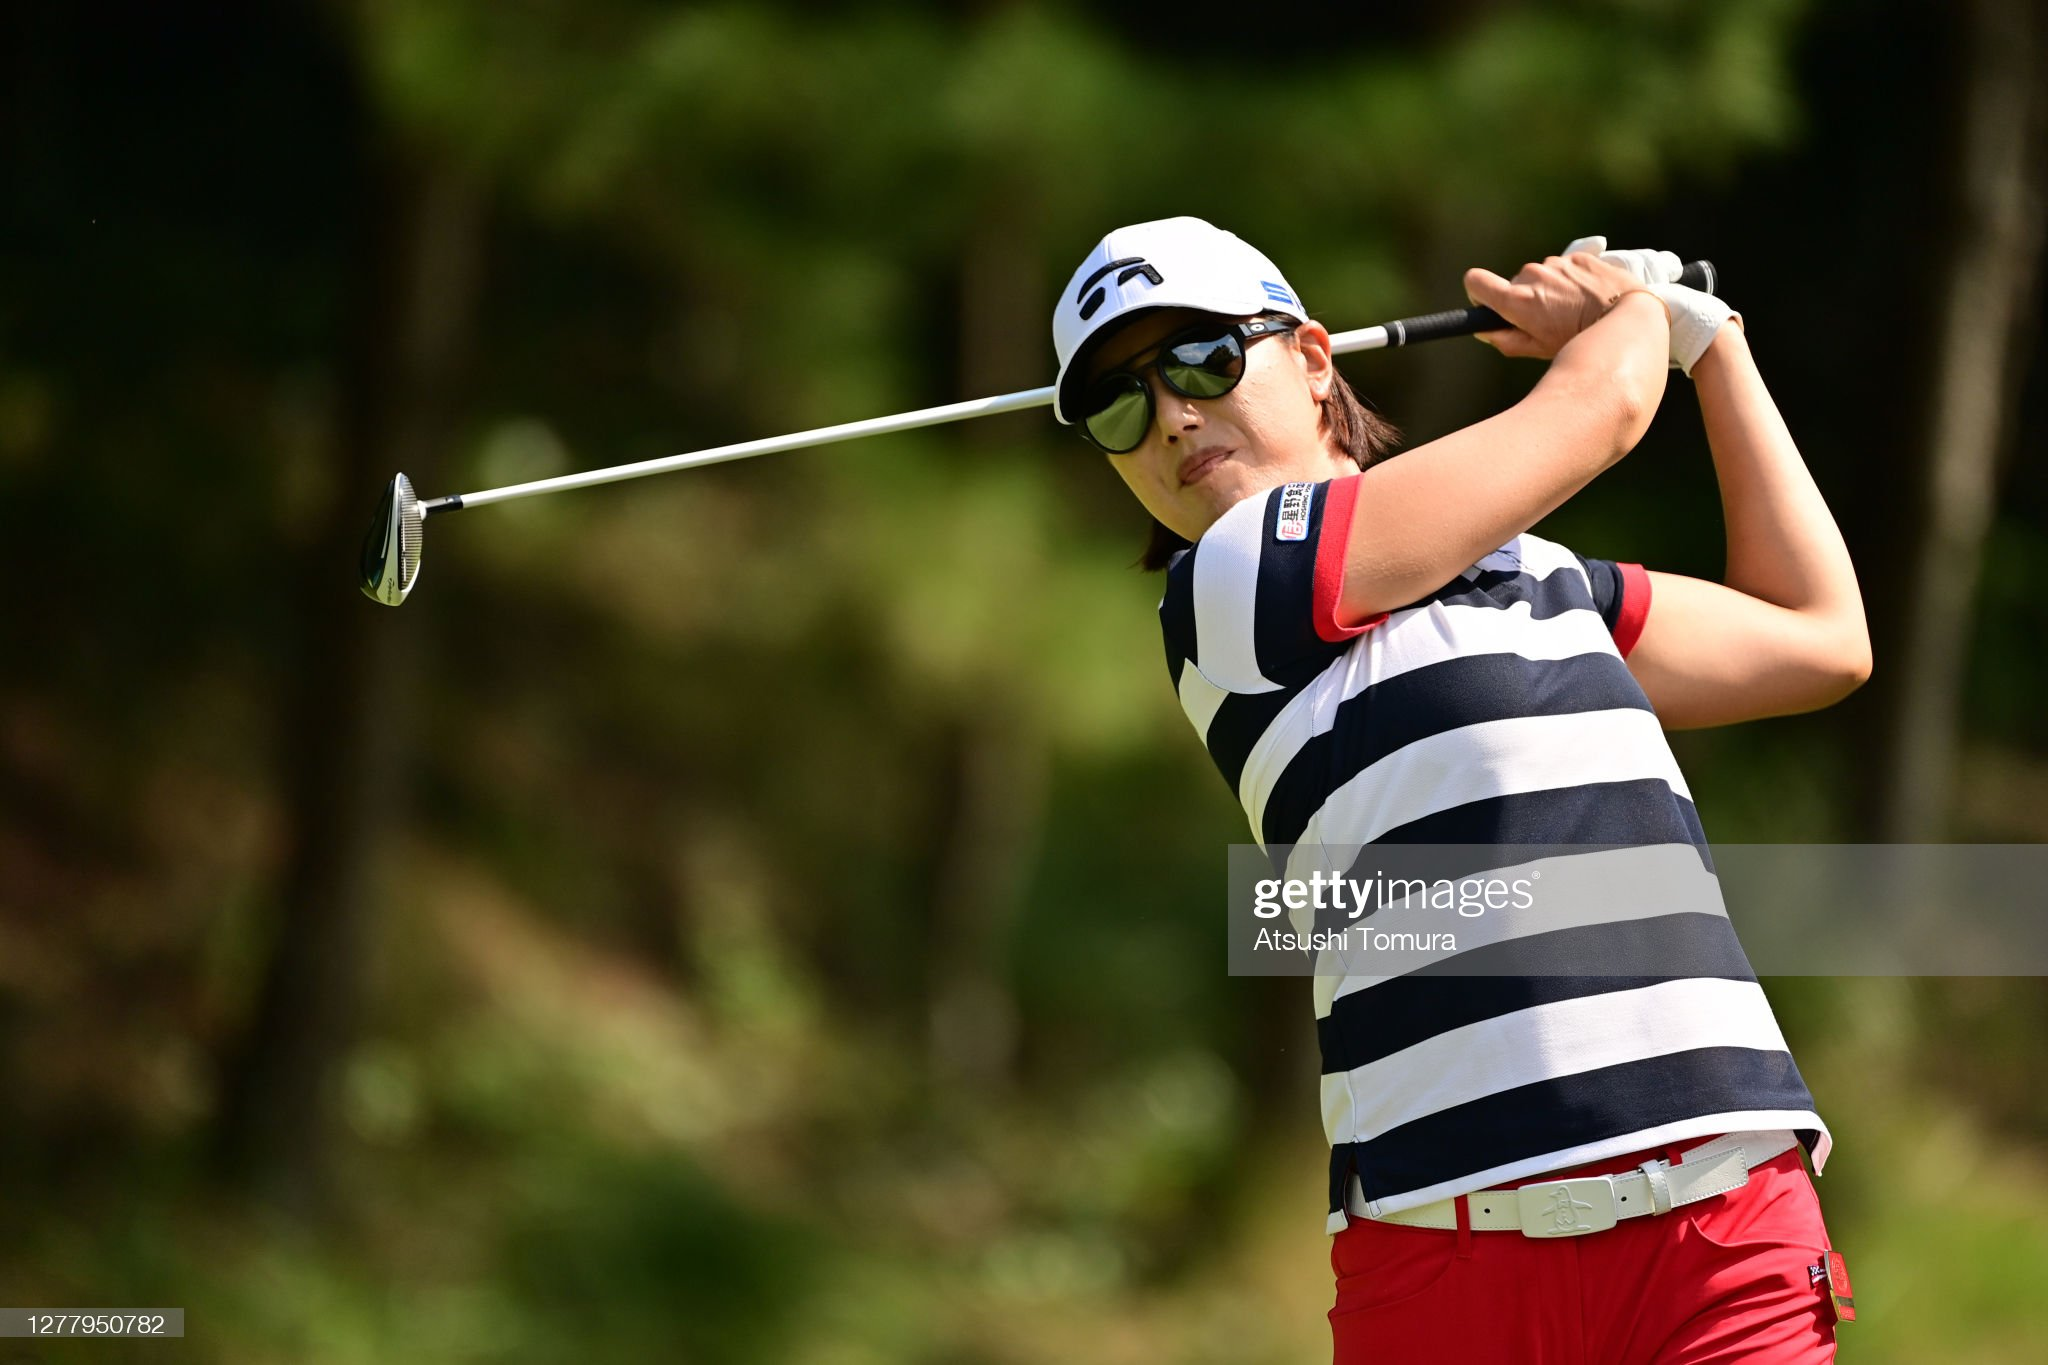 https://media.gettyimages.com/photos/mijeong-jeon-of-south-korea-hits-her-tee-shot-on-the-8th-hole-during-picture-id1277950782?s=2048x2048